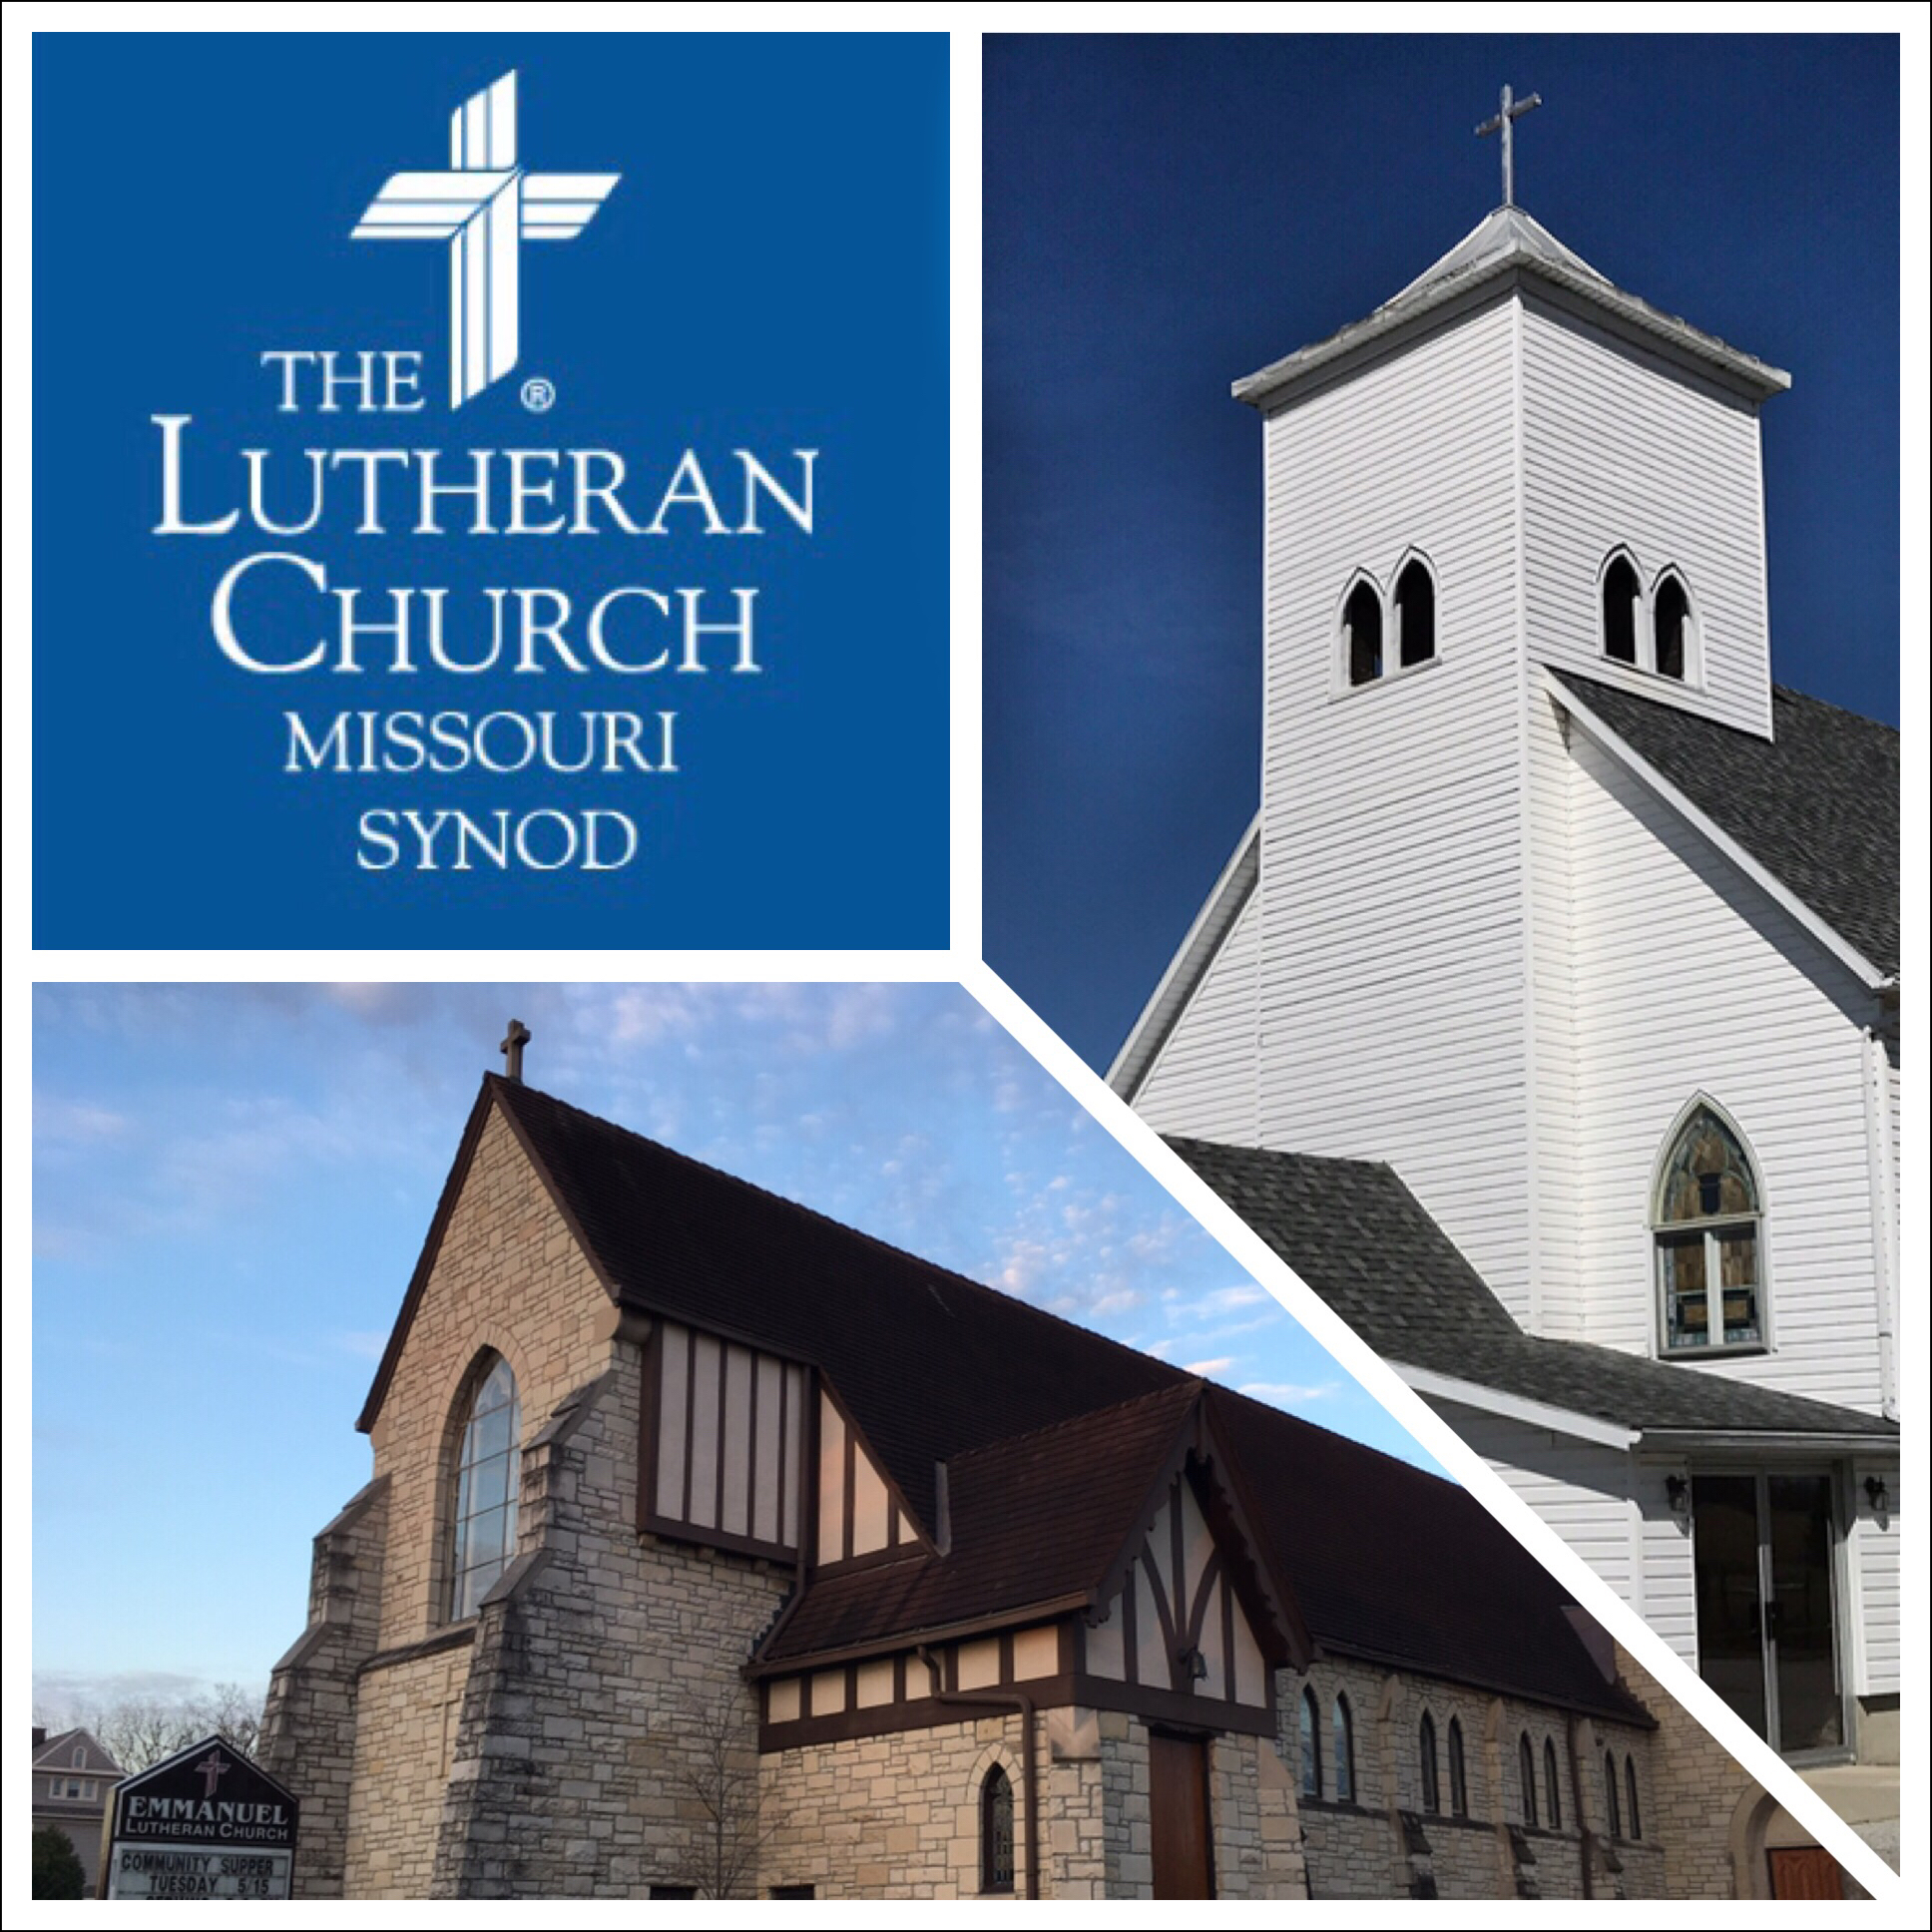 St. John's & Emmanuel Lutheran Churches